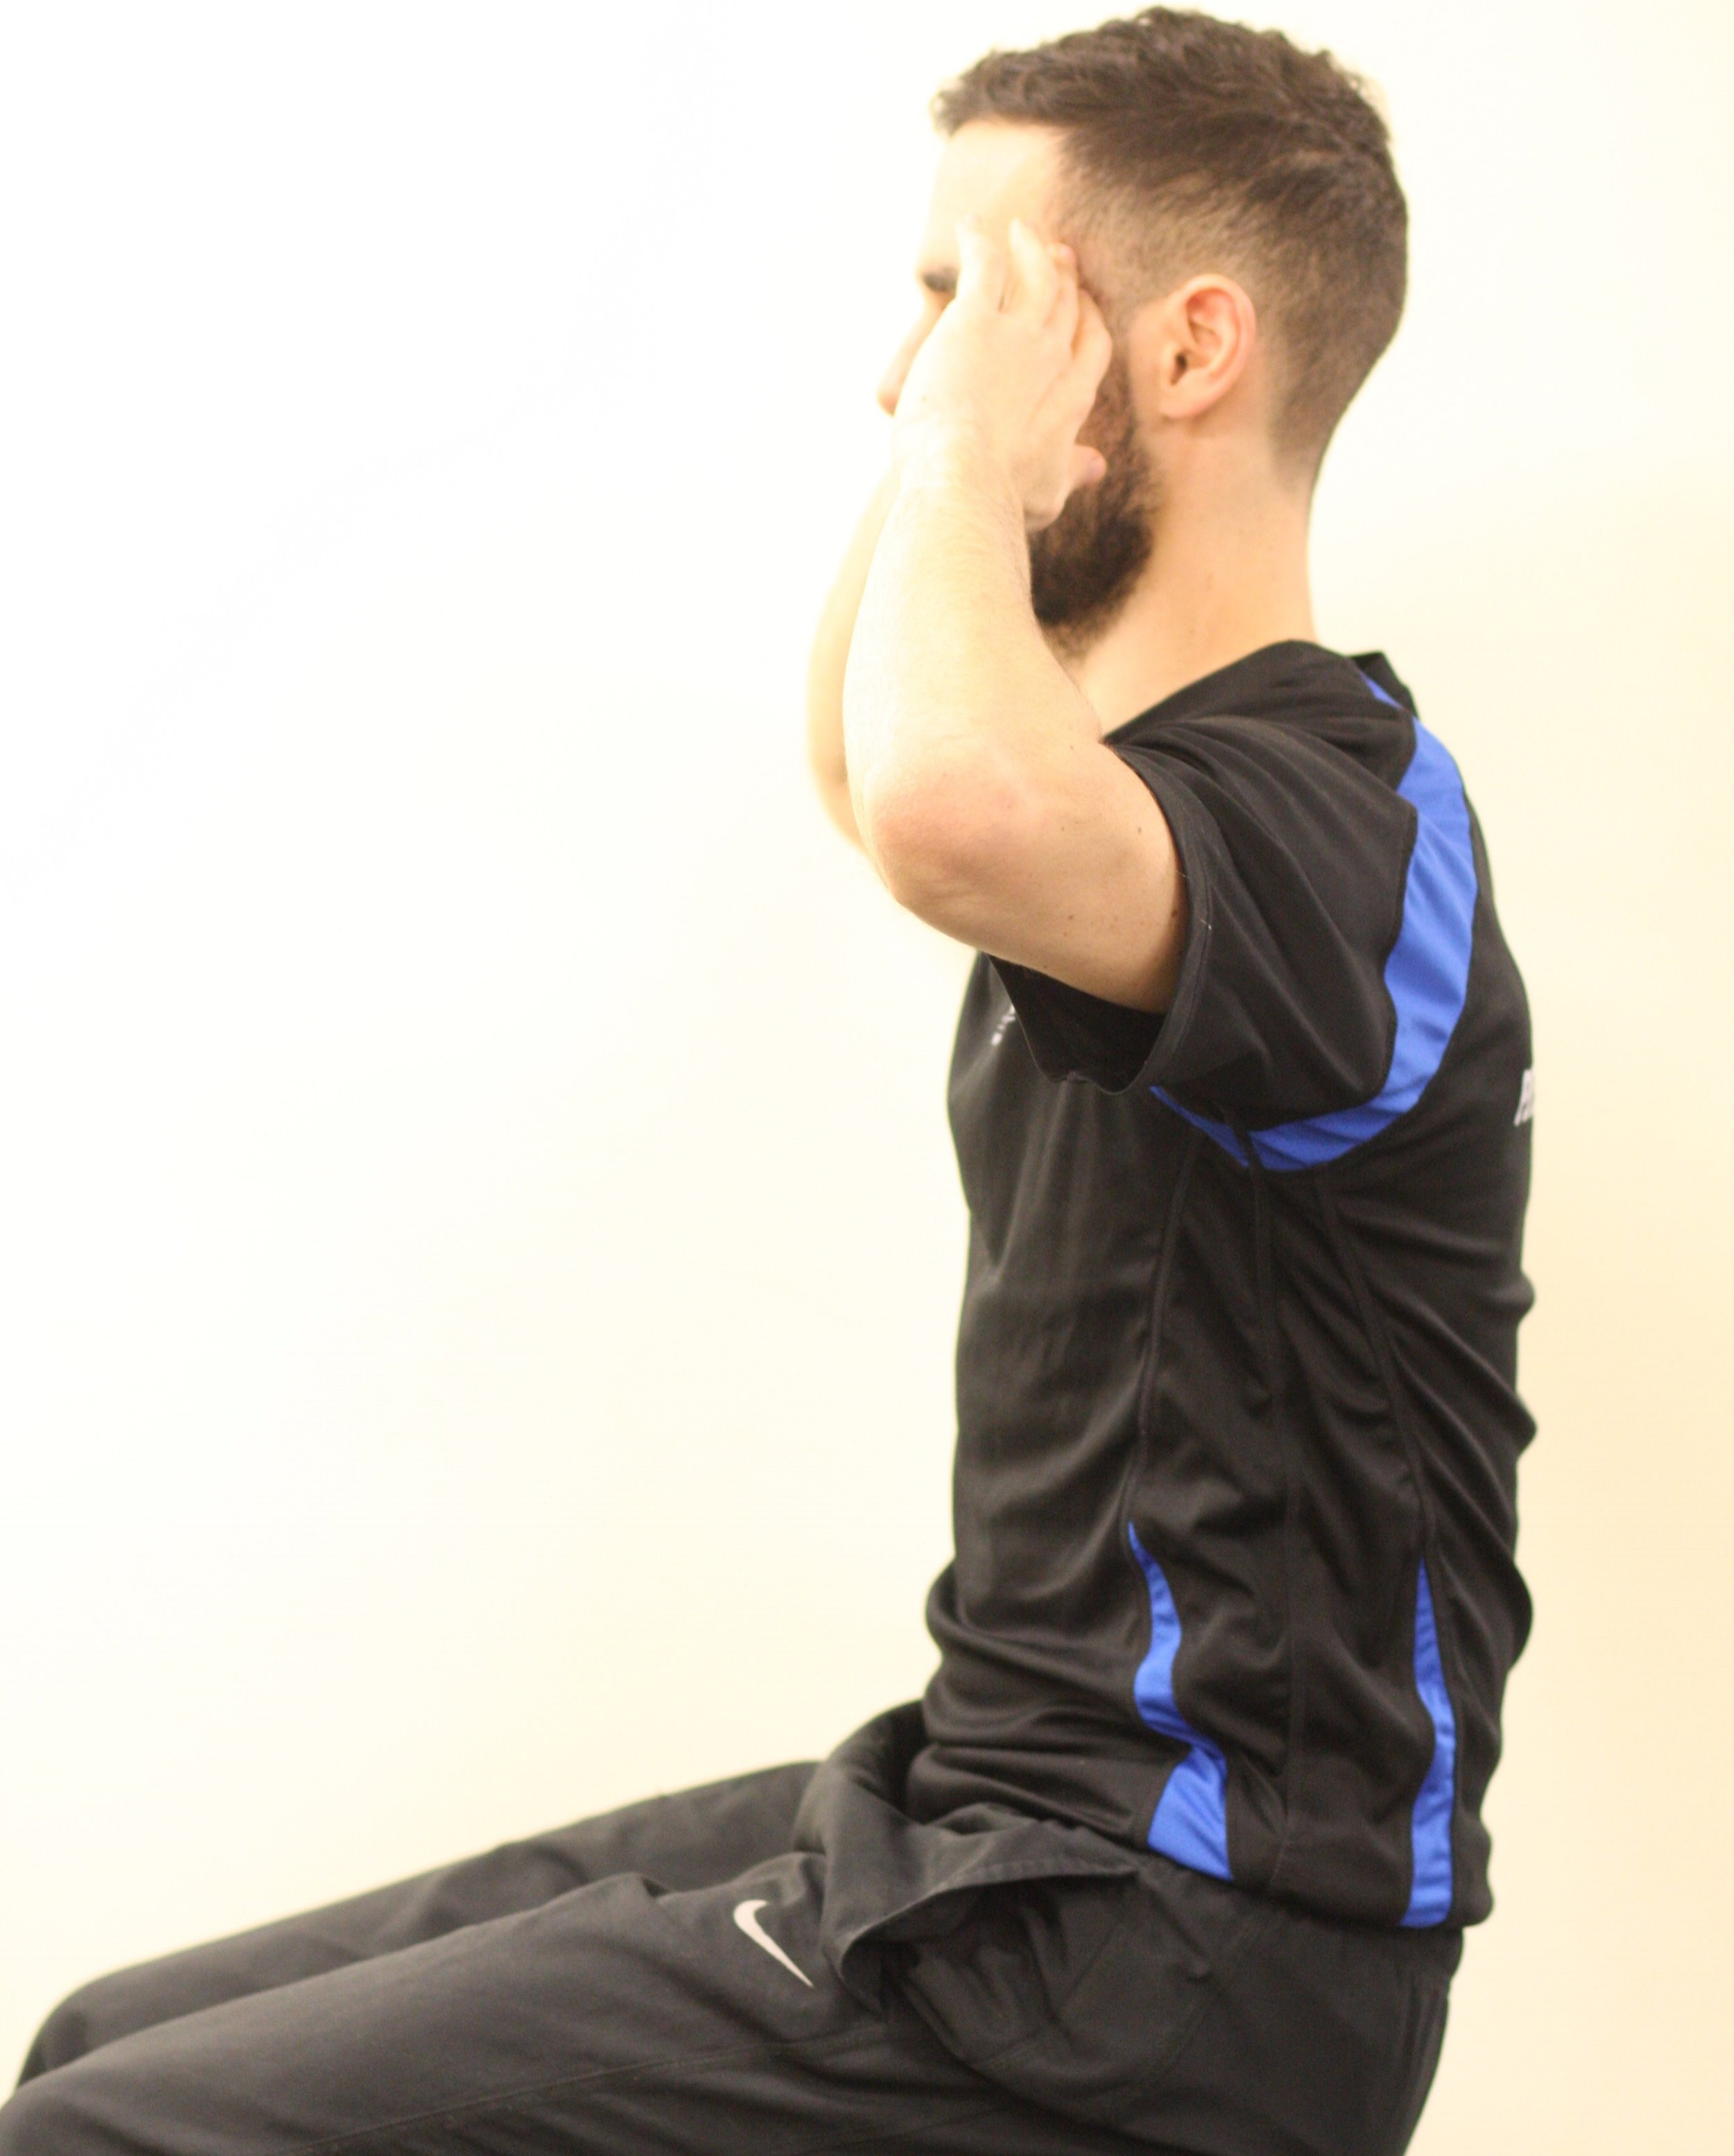 Crunch action apply to sitting posture and resulting in loss of neutral curviture of spine